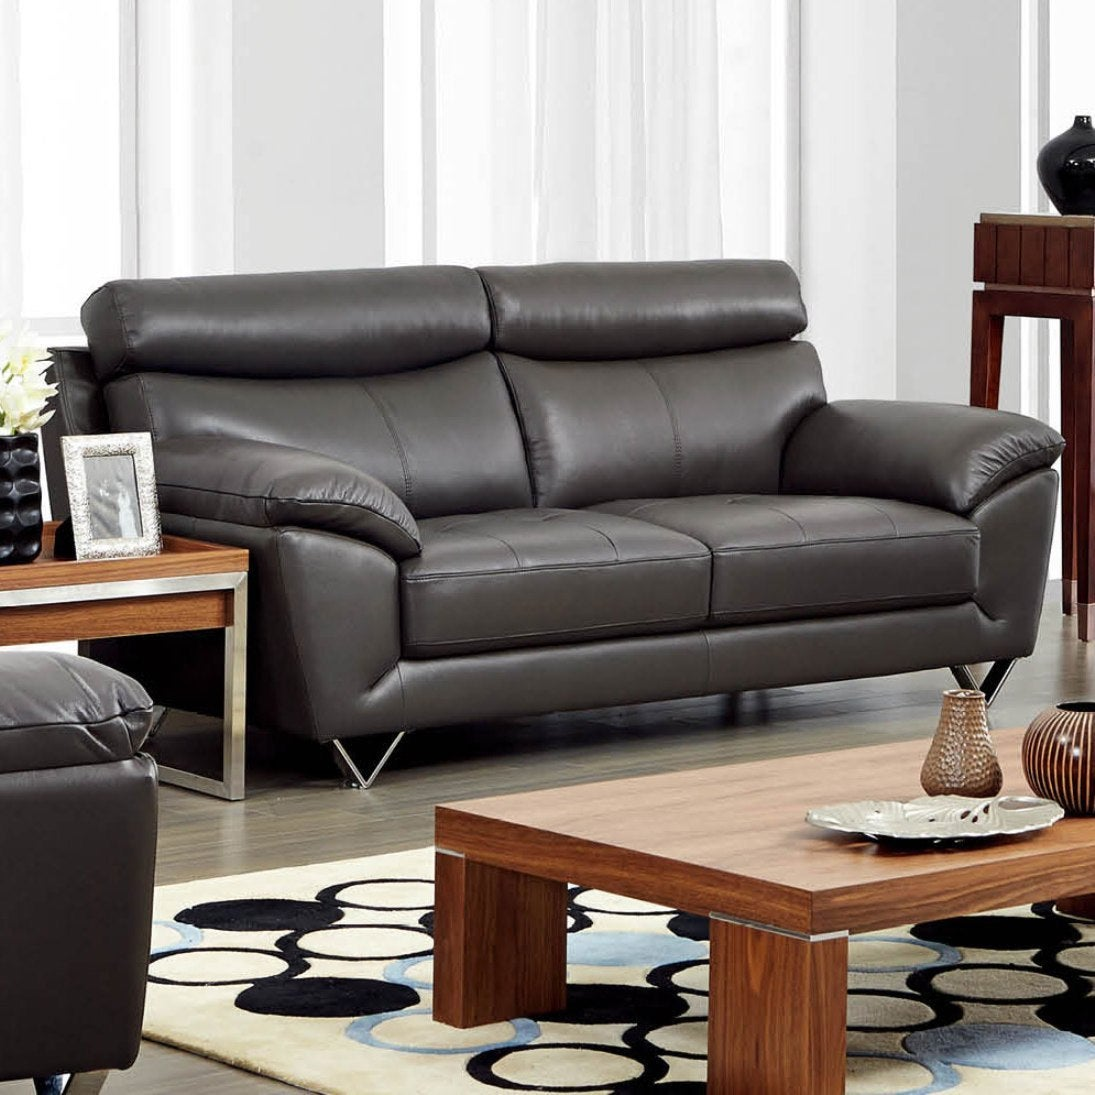 Luca Home Contemporary Grey Italian Leather Sofa   Free Shipping Today    Overstock.com   17236983